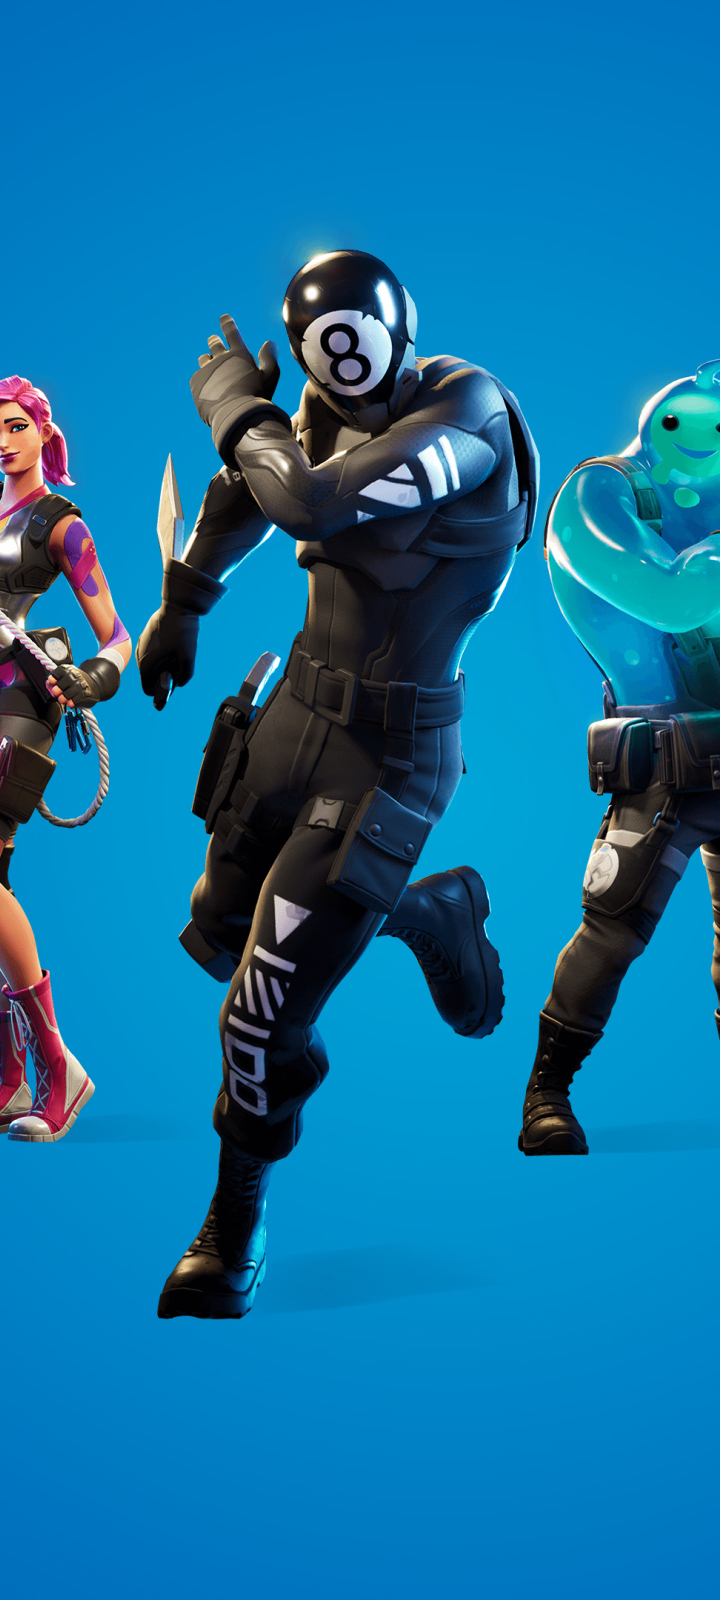 720x1600 Fortnite Season 11 720x1600 Resolution Wallpaper Hd Games 4k Wallpapers Images Photos And Background